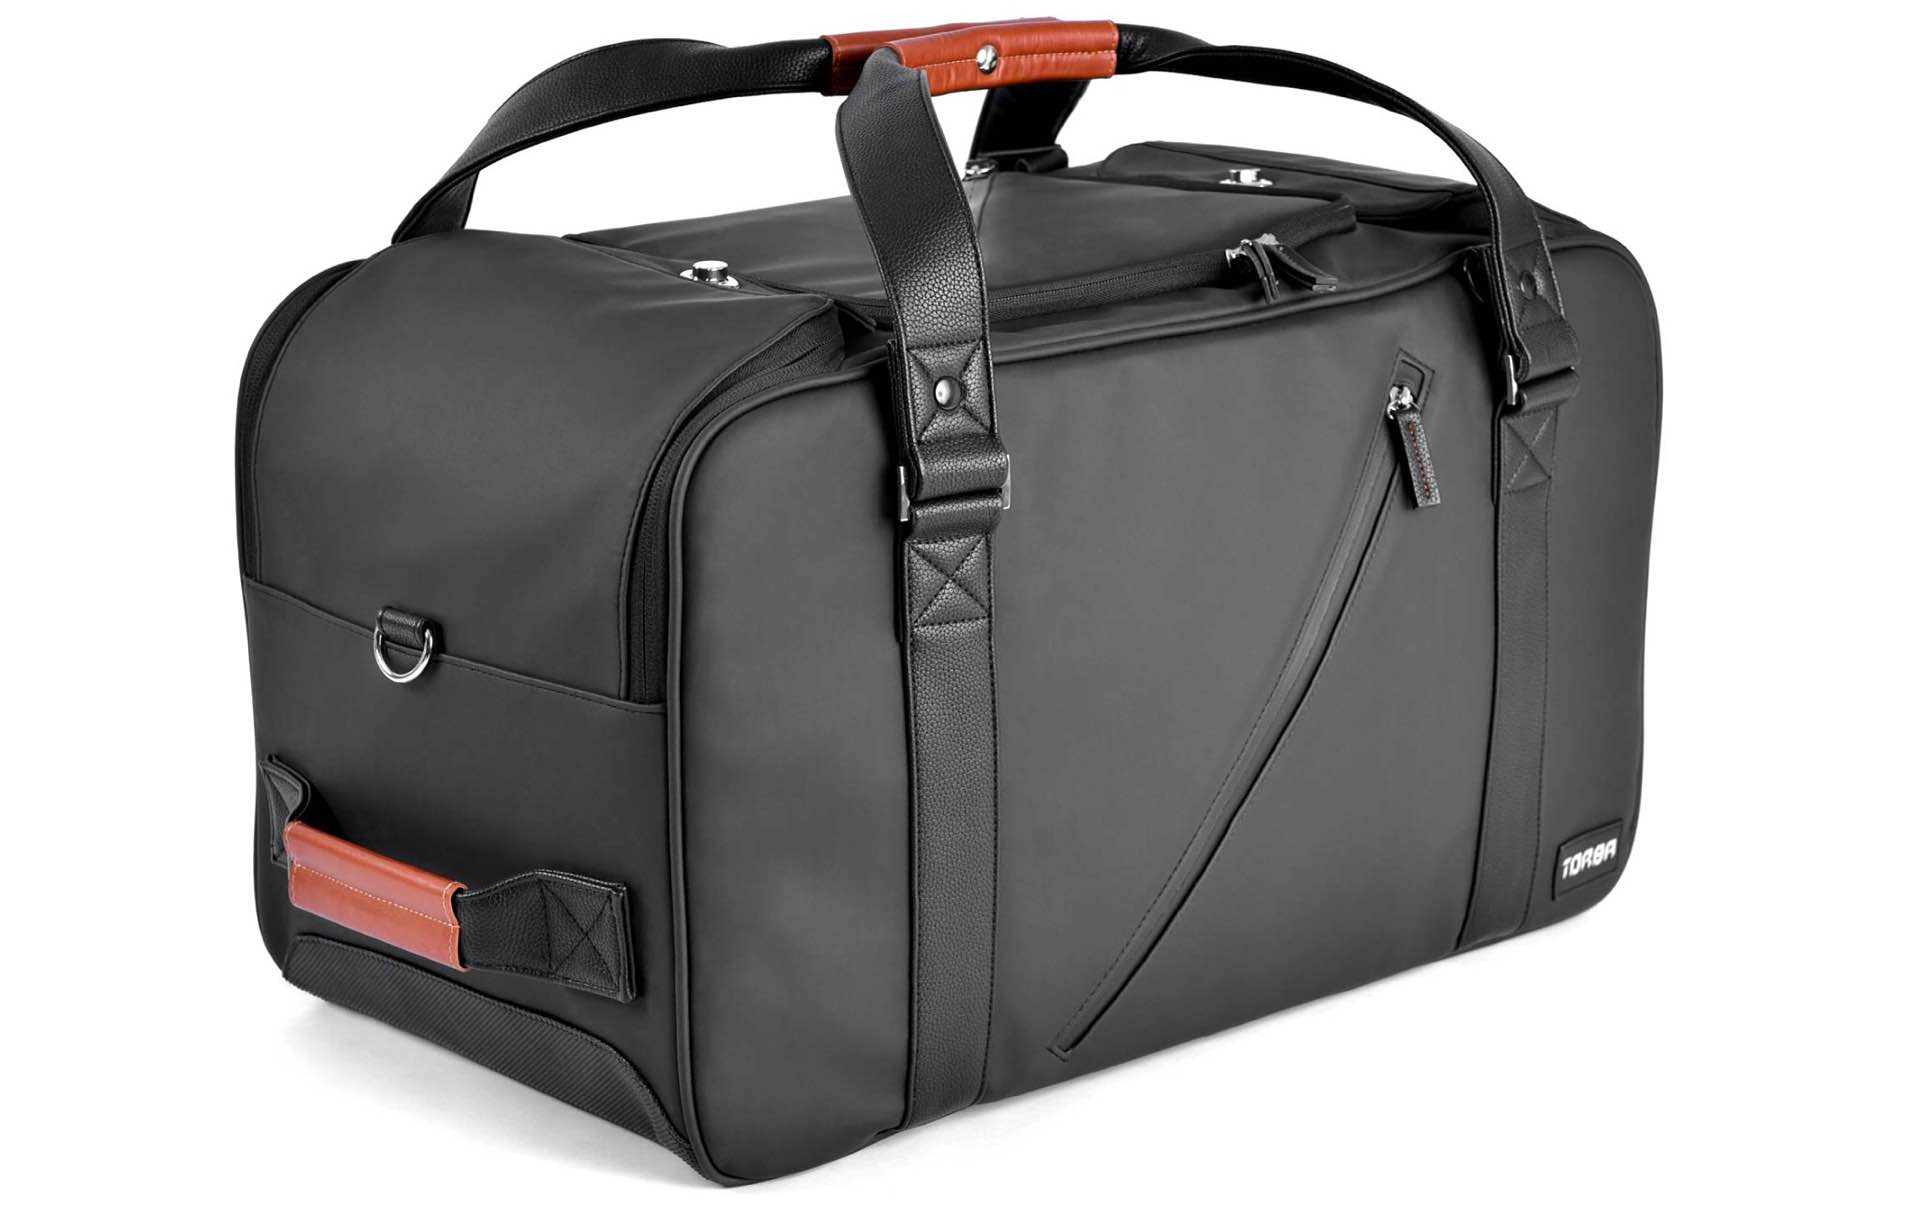 torba ez duffle bag kickstarter tools and toys